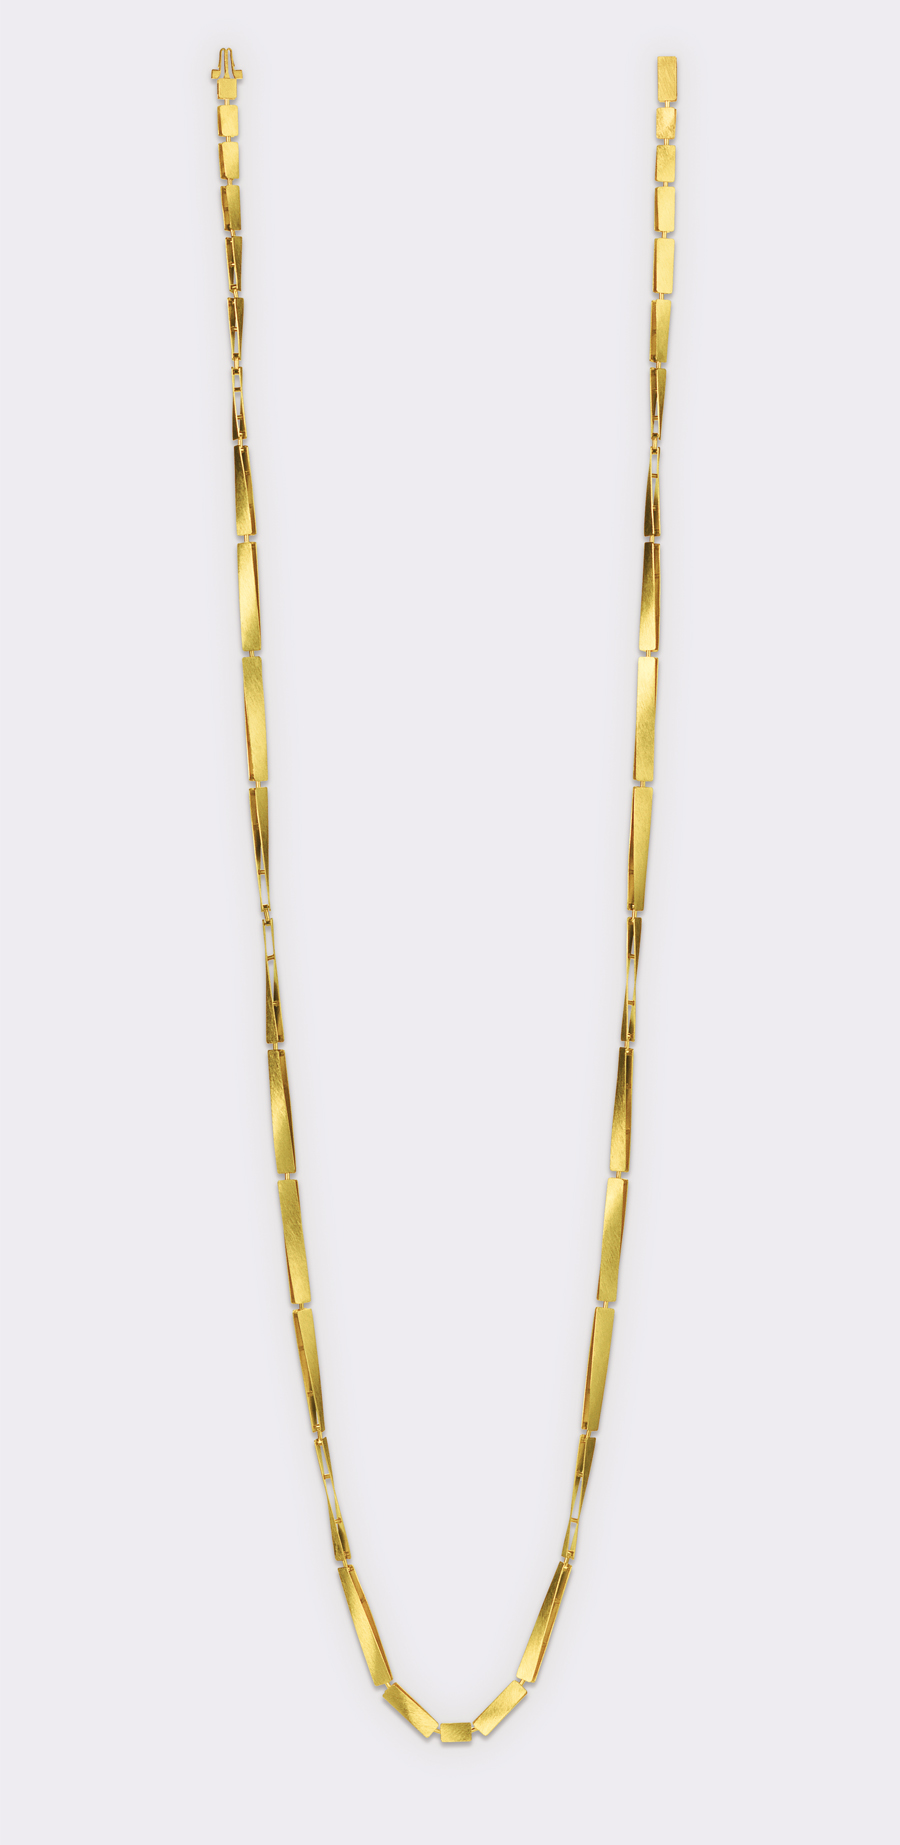 necklace  2009  gold 750  1100x6  mm